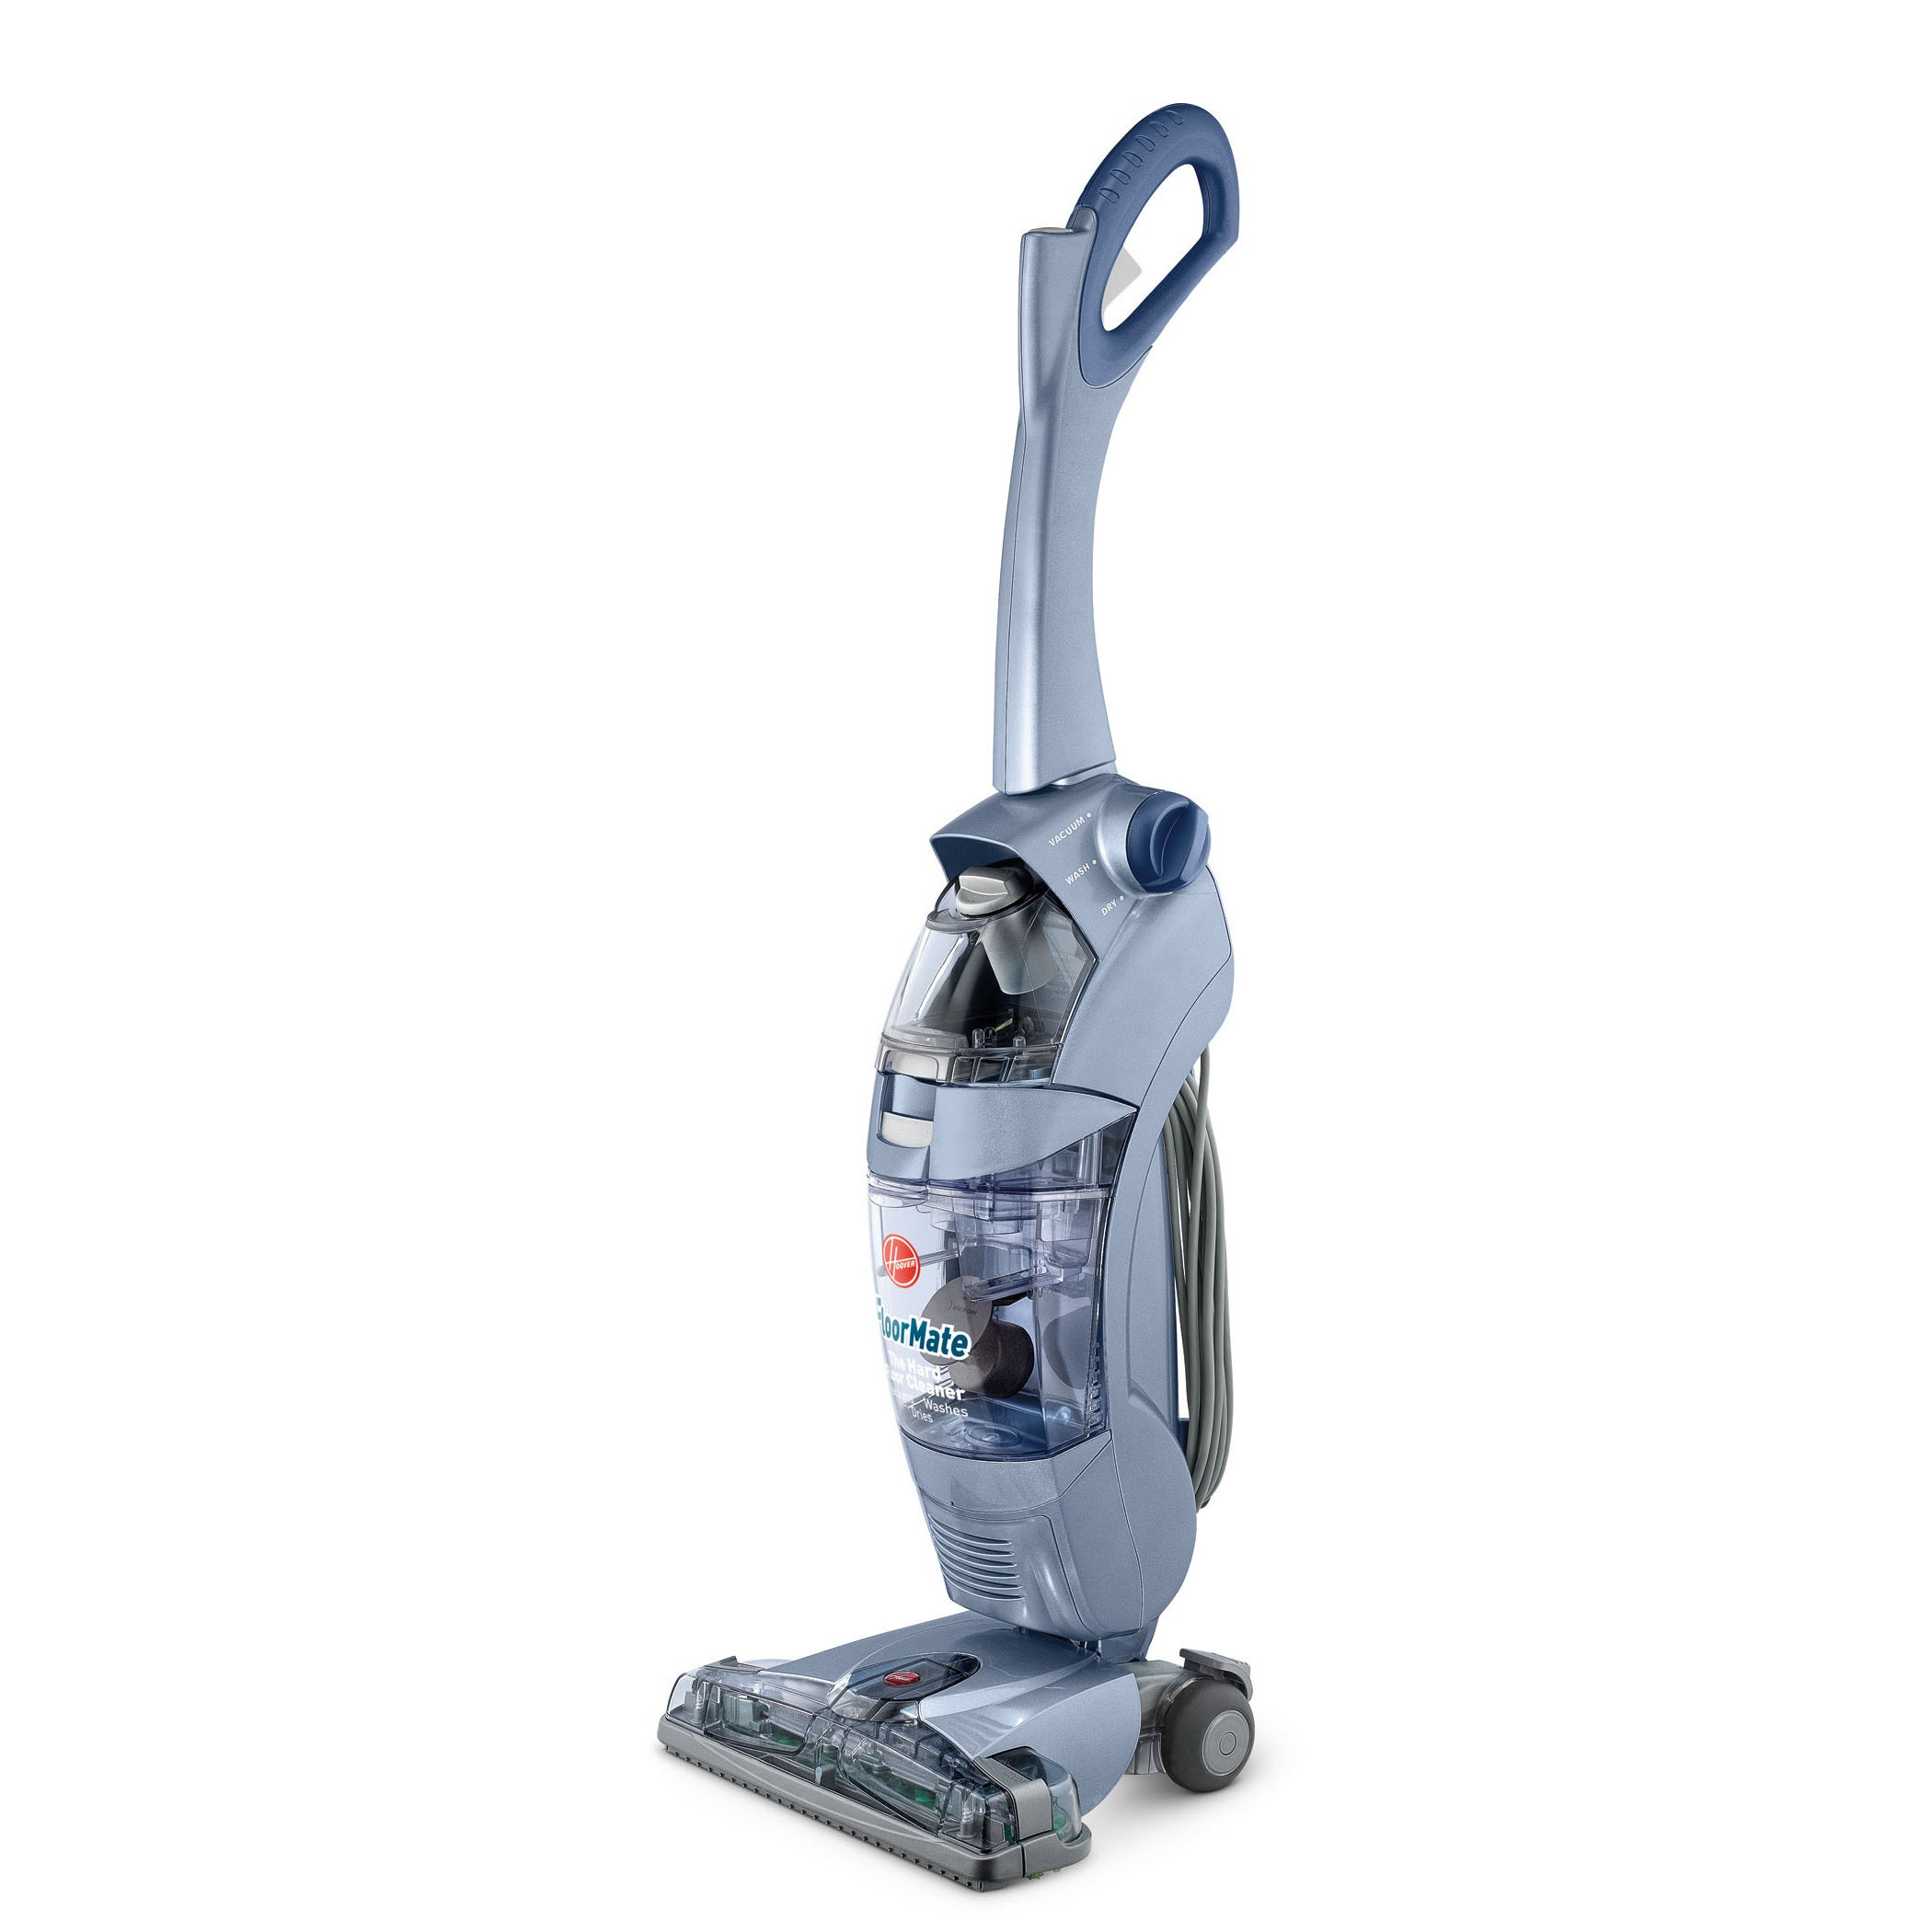 Hoover fh40010b floormate hard floor cleaner free shipping hoover fh40010b floormate hard floor cleaner free shipping today overstock 12703208 dailygadgetfo Images